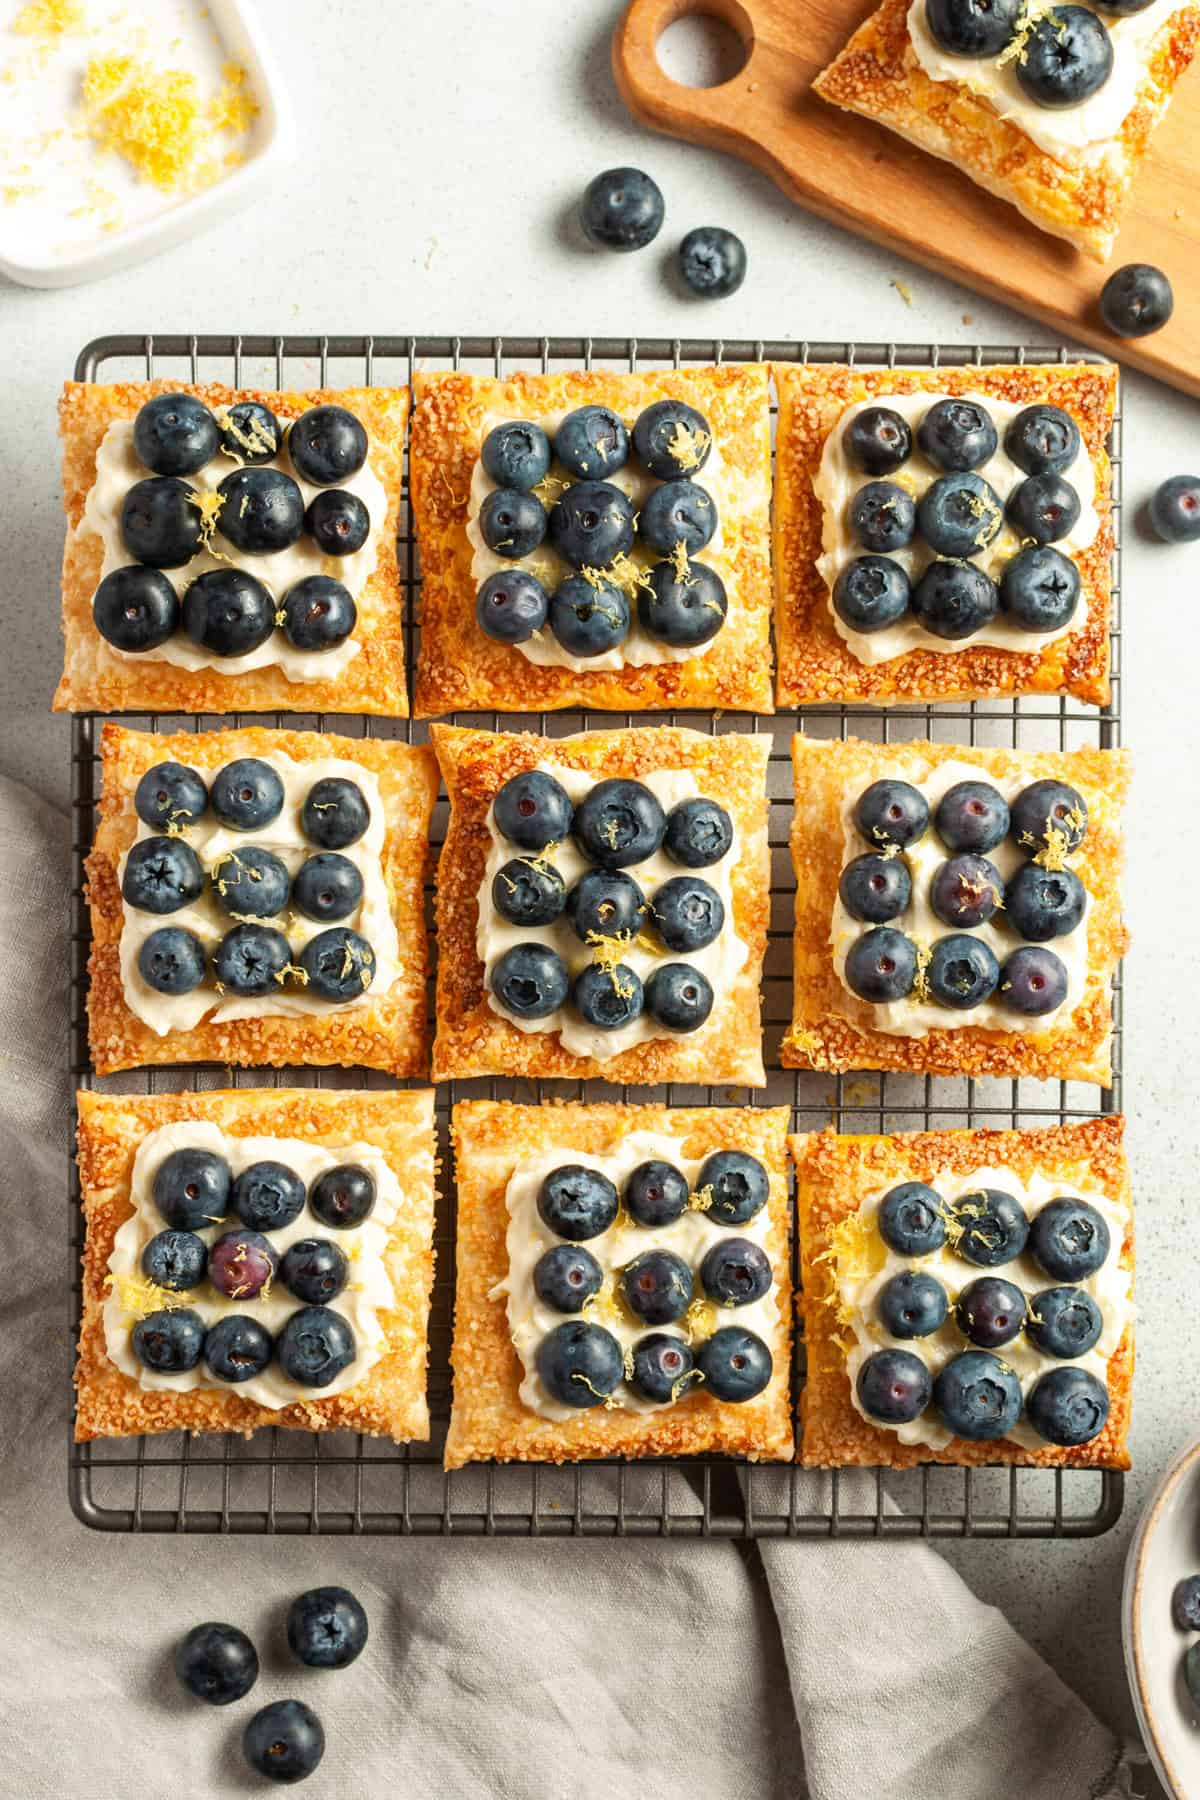 tarts sitting on a cooling rack, topped with blueberries and lemon zest.